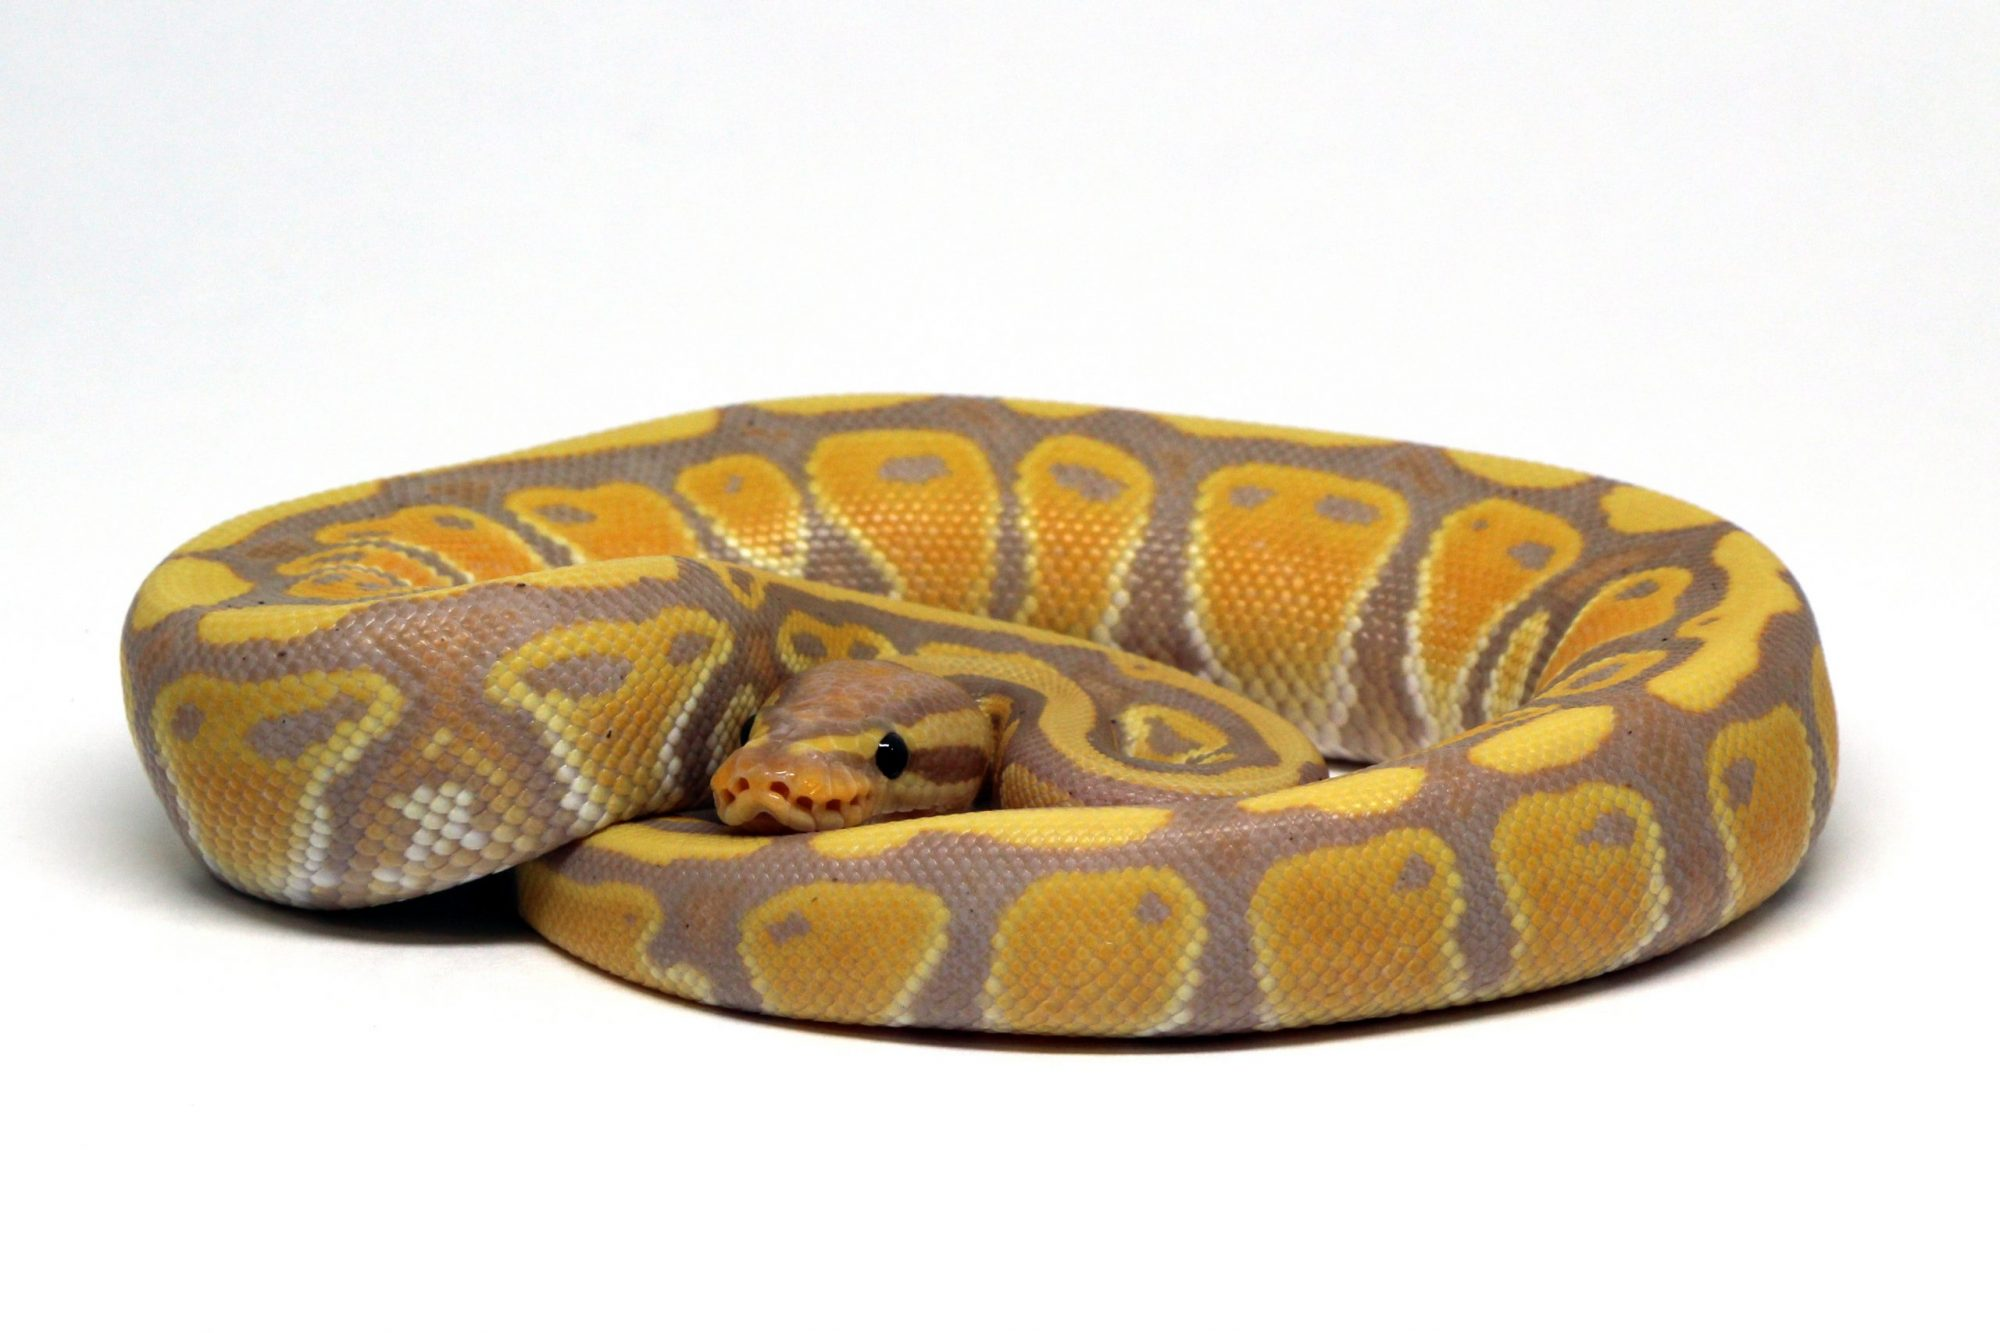 Banana Het Clown Ball Python Snake Boa Corn